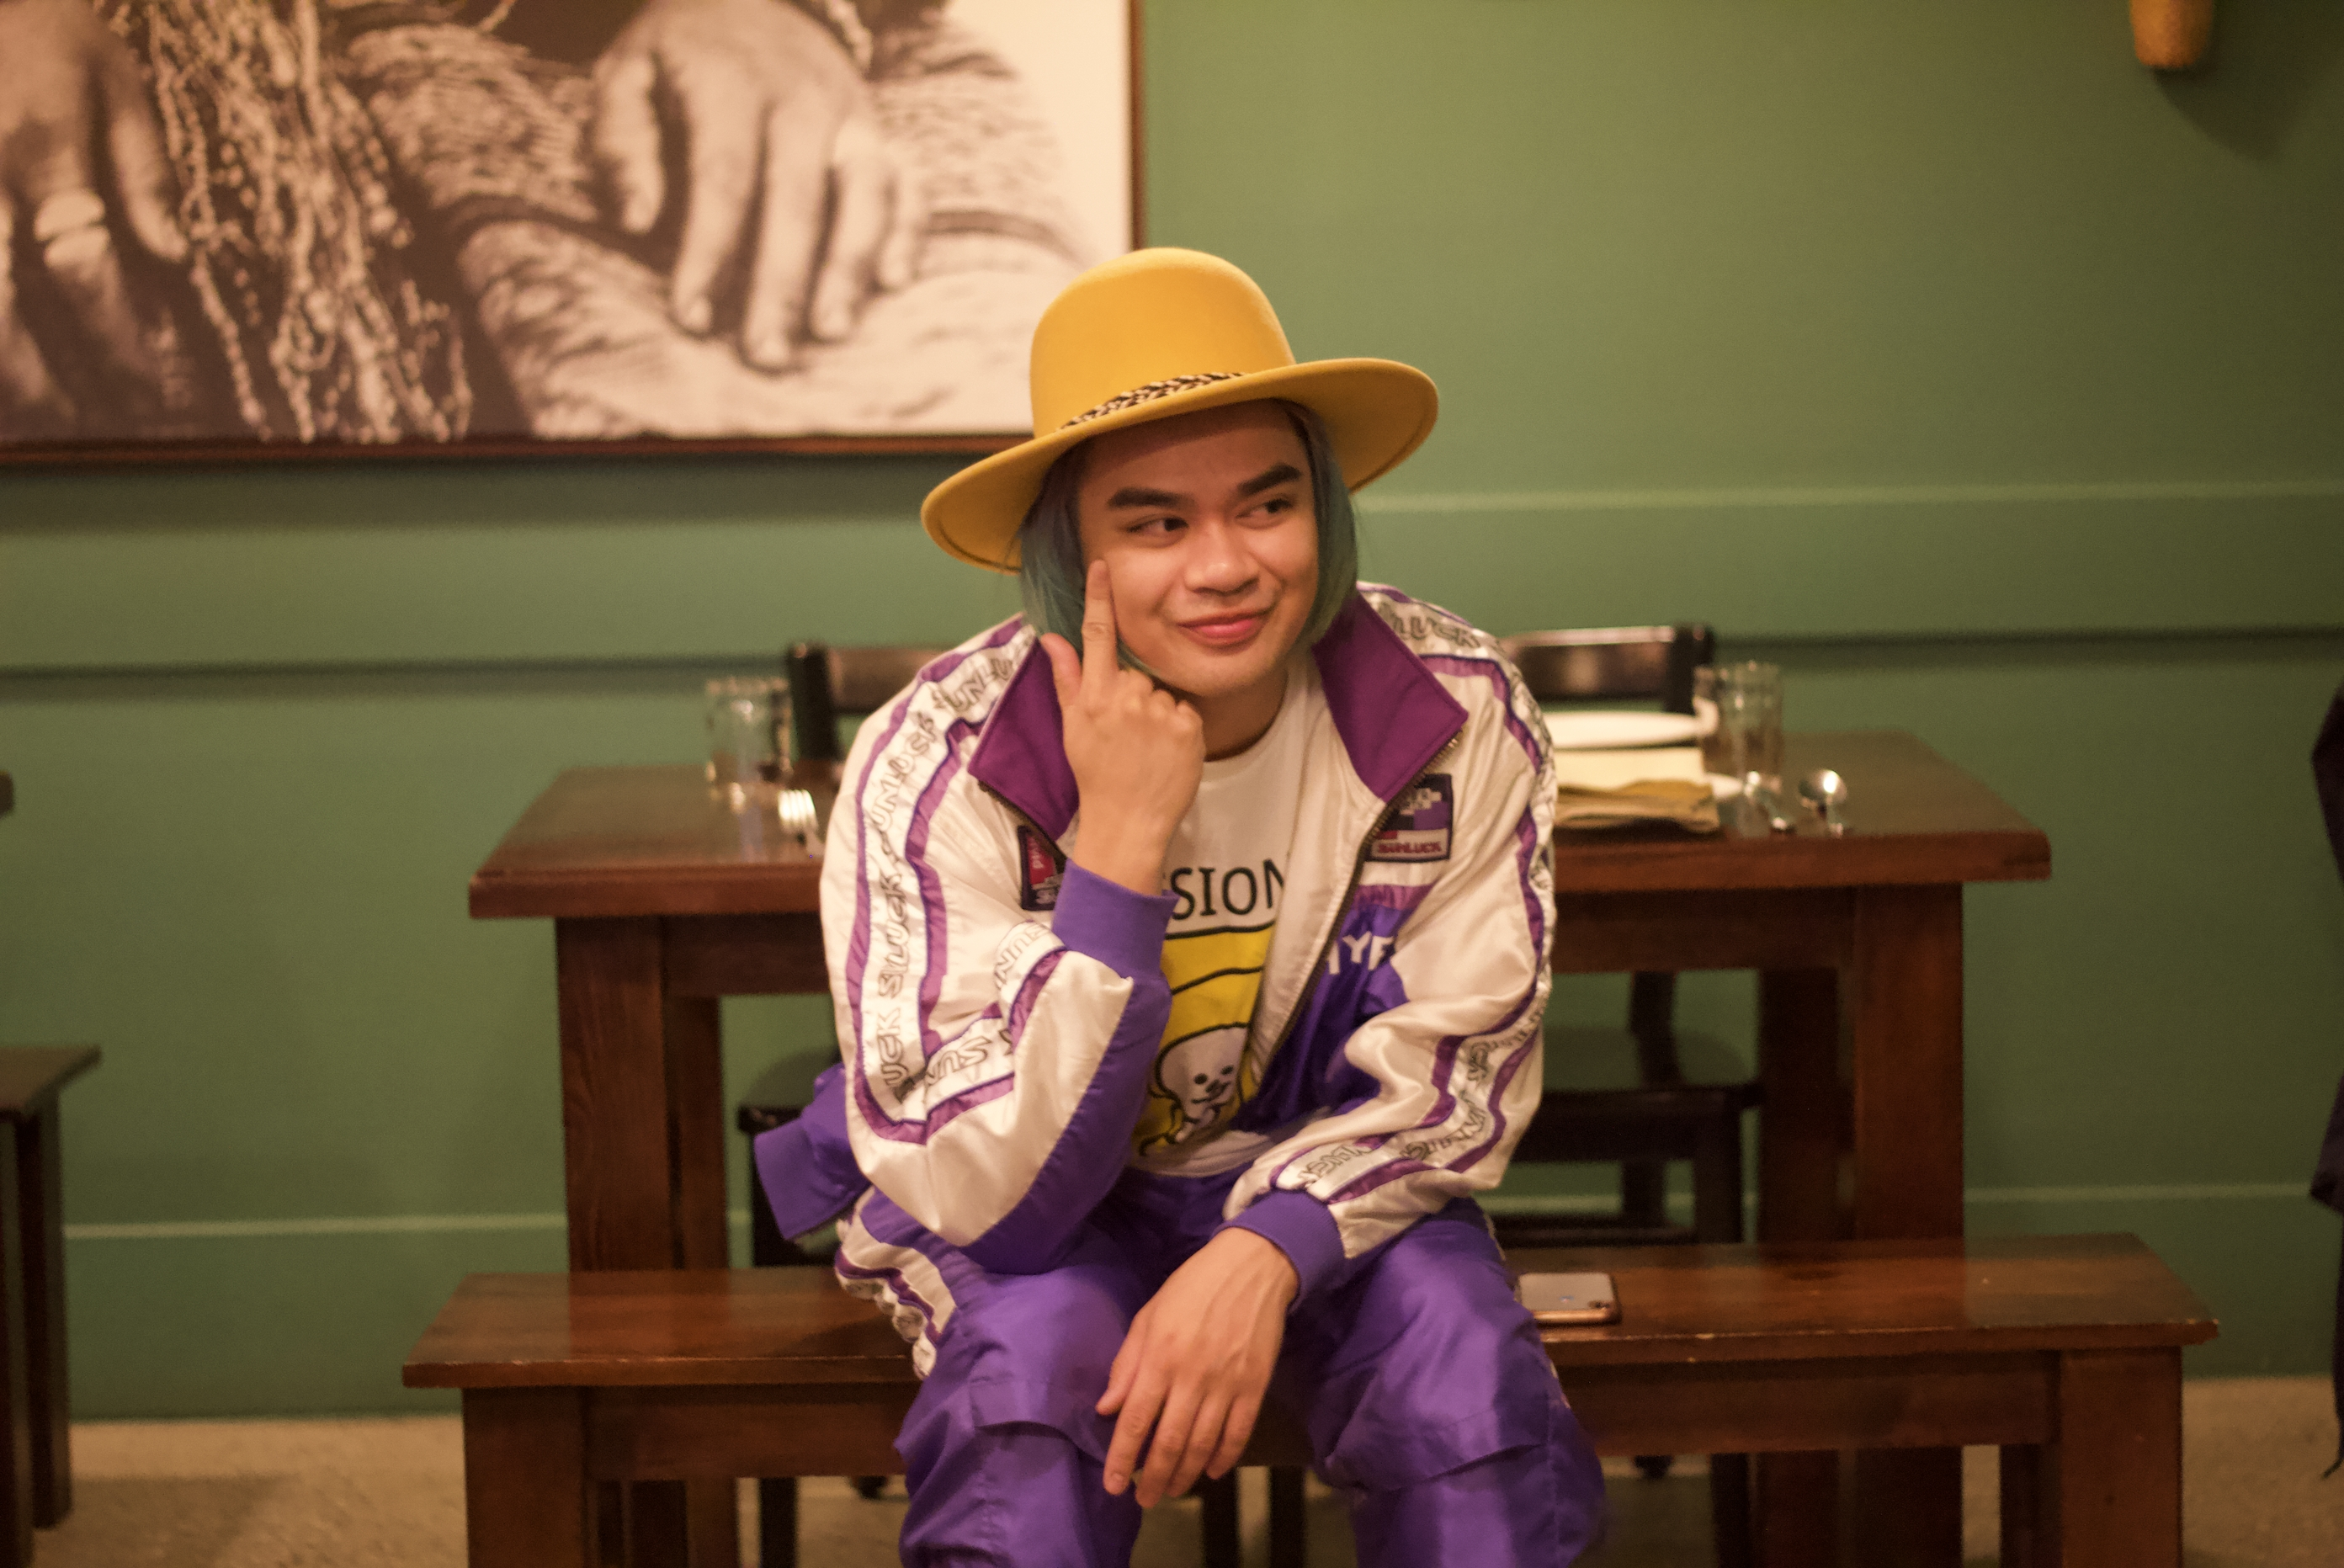 We Took Shawn Wasabi To His Favorite Filipino Spot To Talk Music, Meals, And Culture